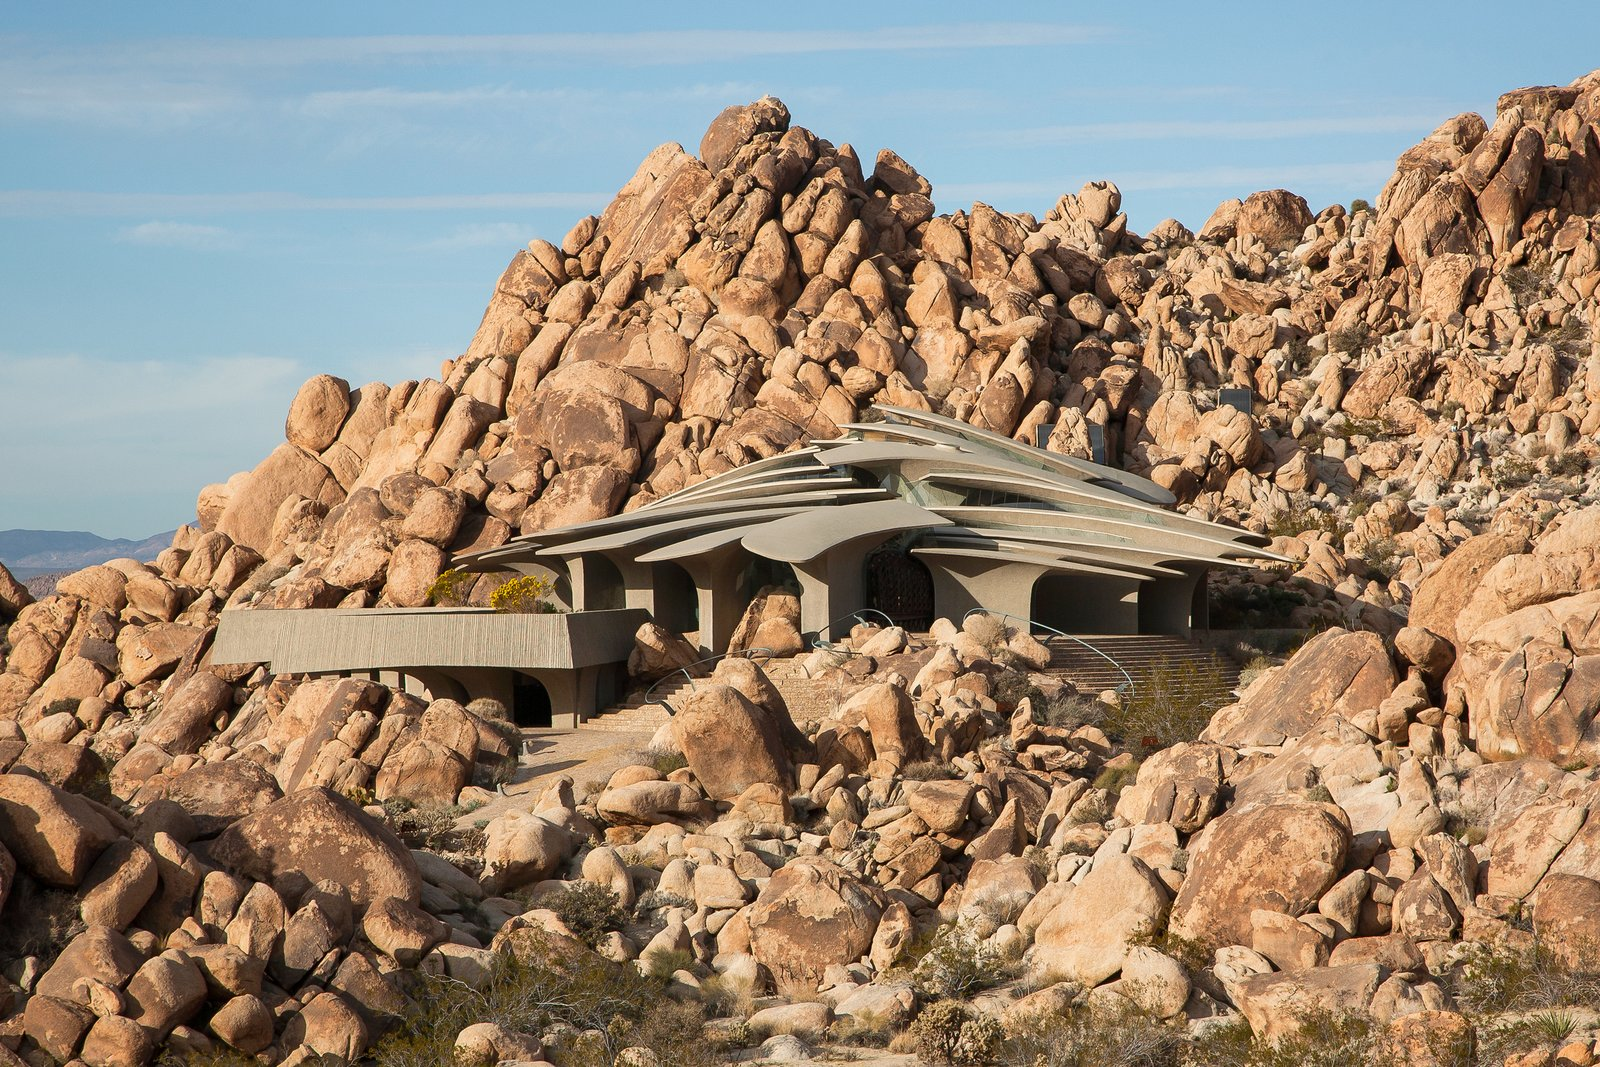 High Desert House by Kendrick Bangs Kellogg - Modern Architectural Masterpiece in High Desert, California